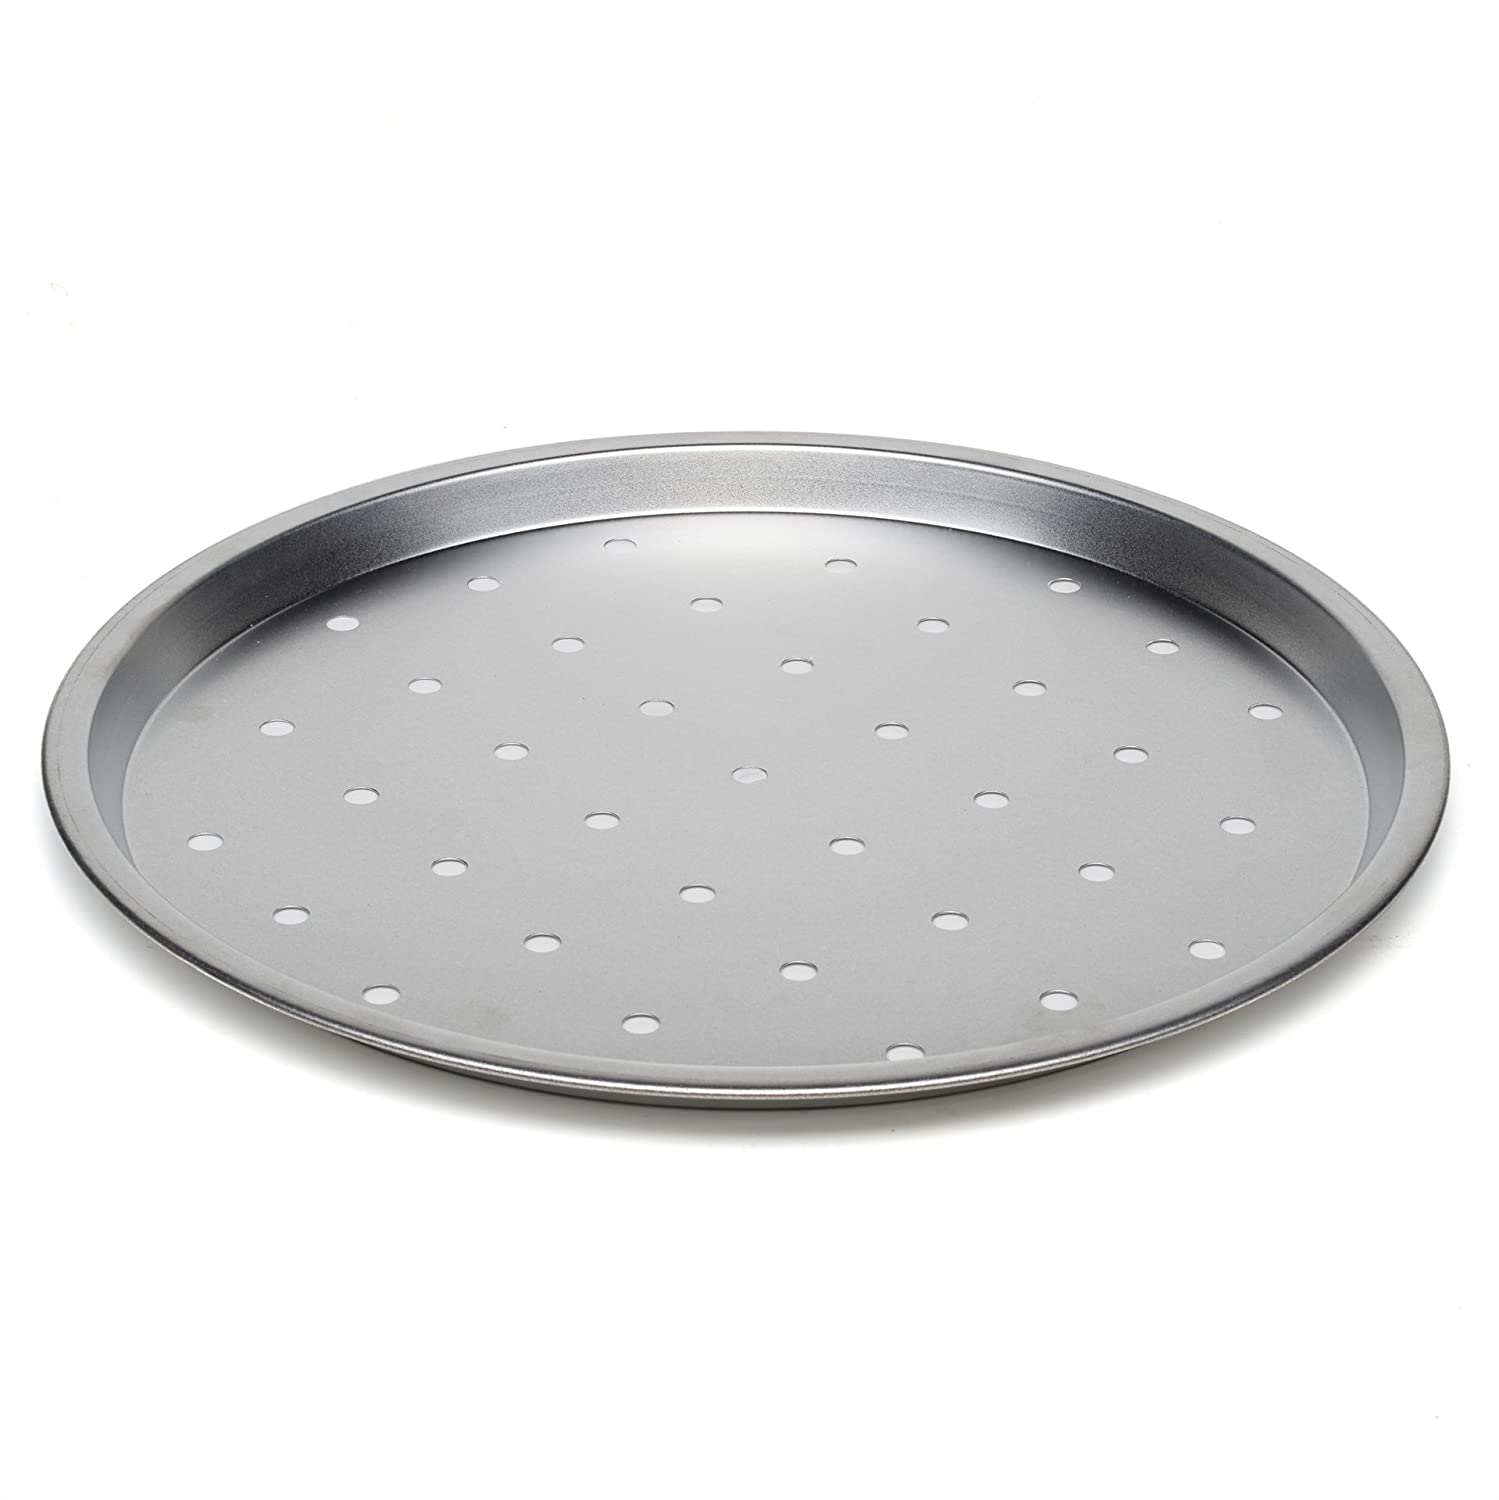 Large Pizza Crisper Tray Oven Baking Pan Roasting Tin Non Stick Pans 34cm Maxi Nature Kitchenware